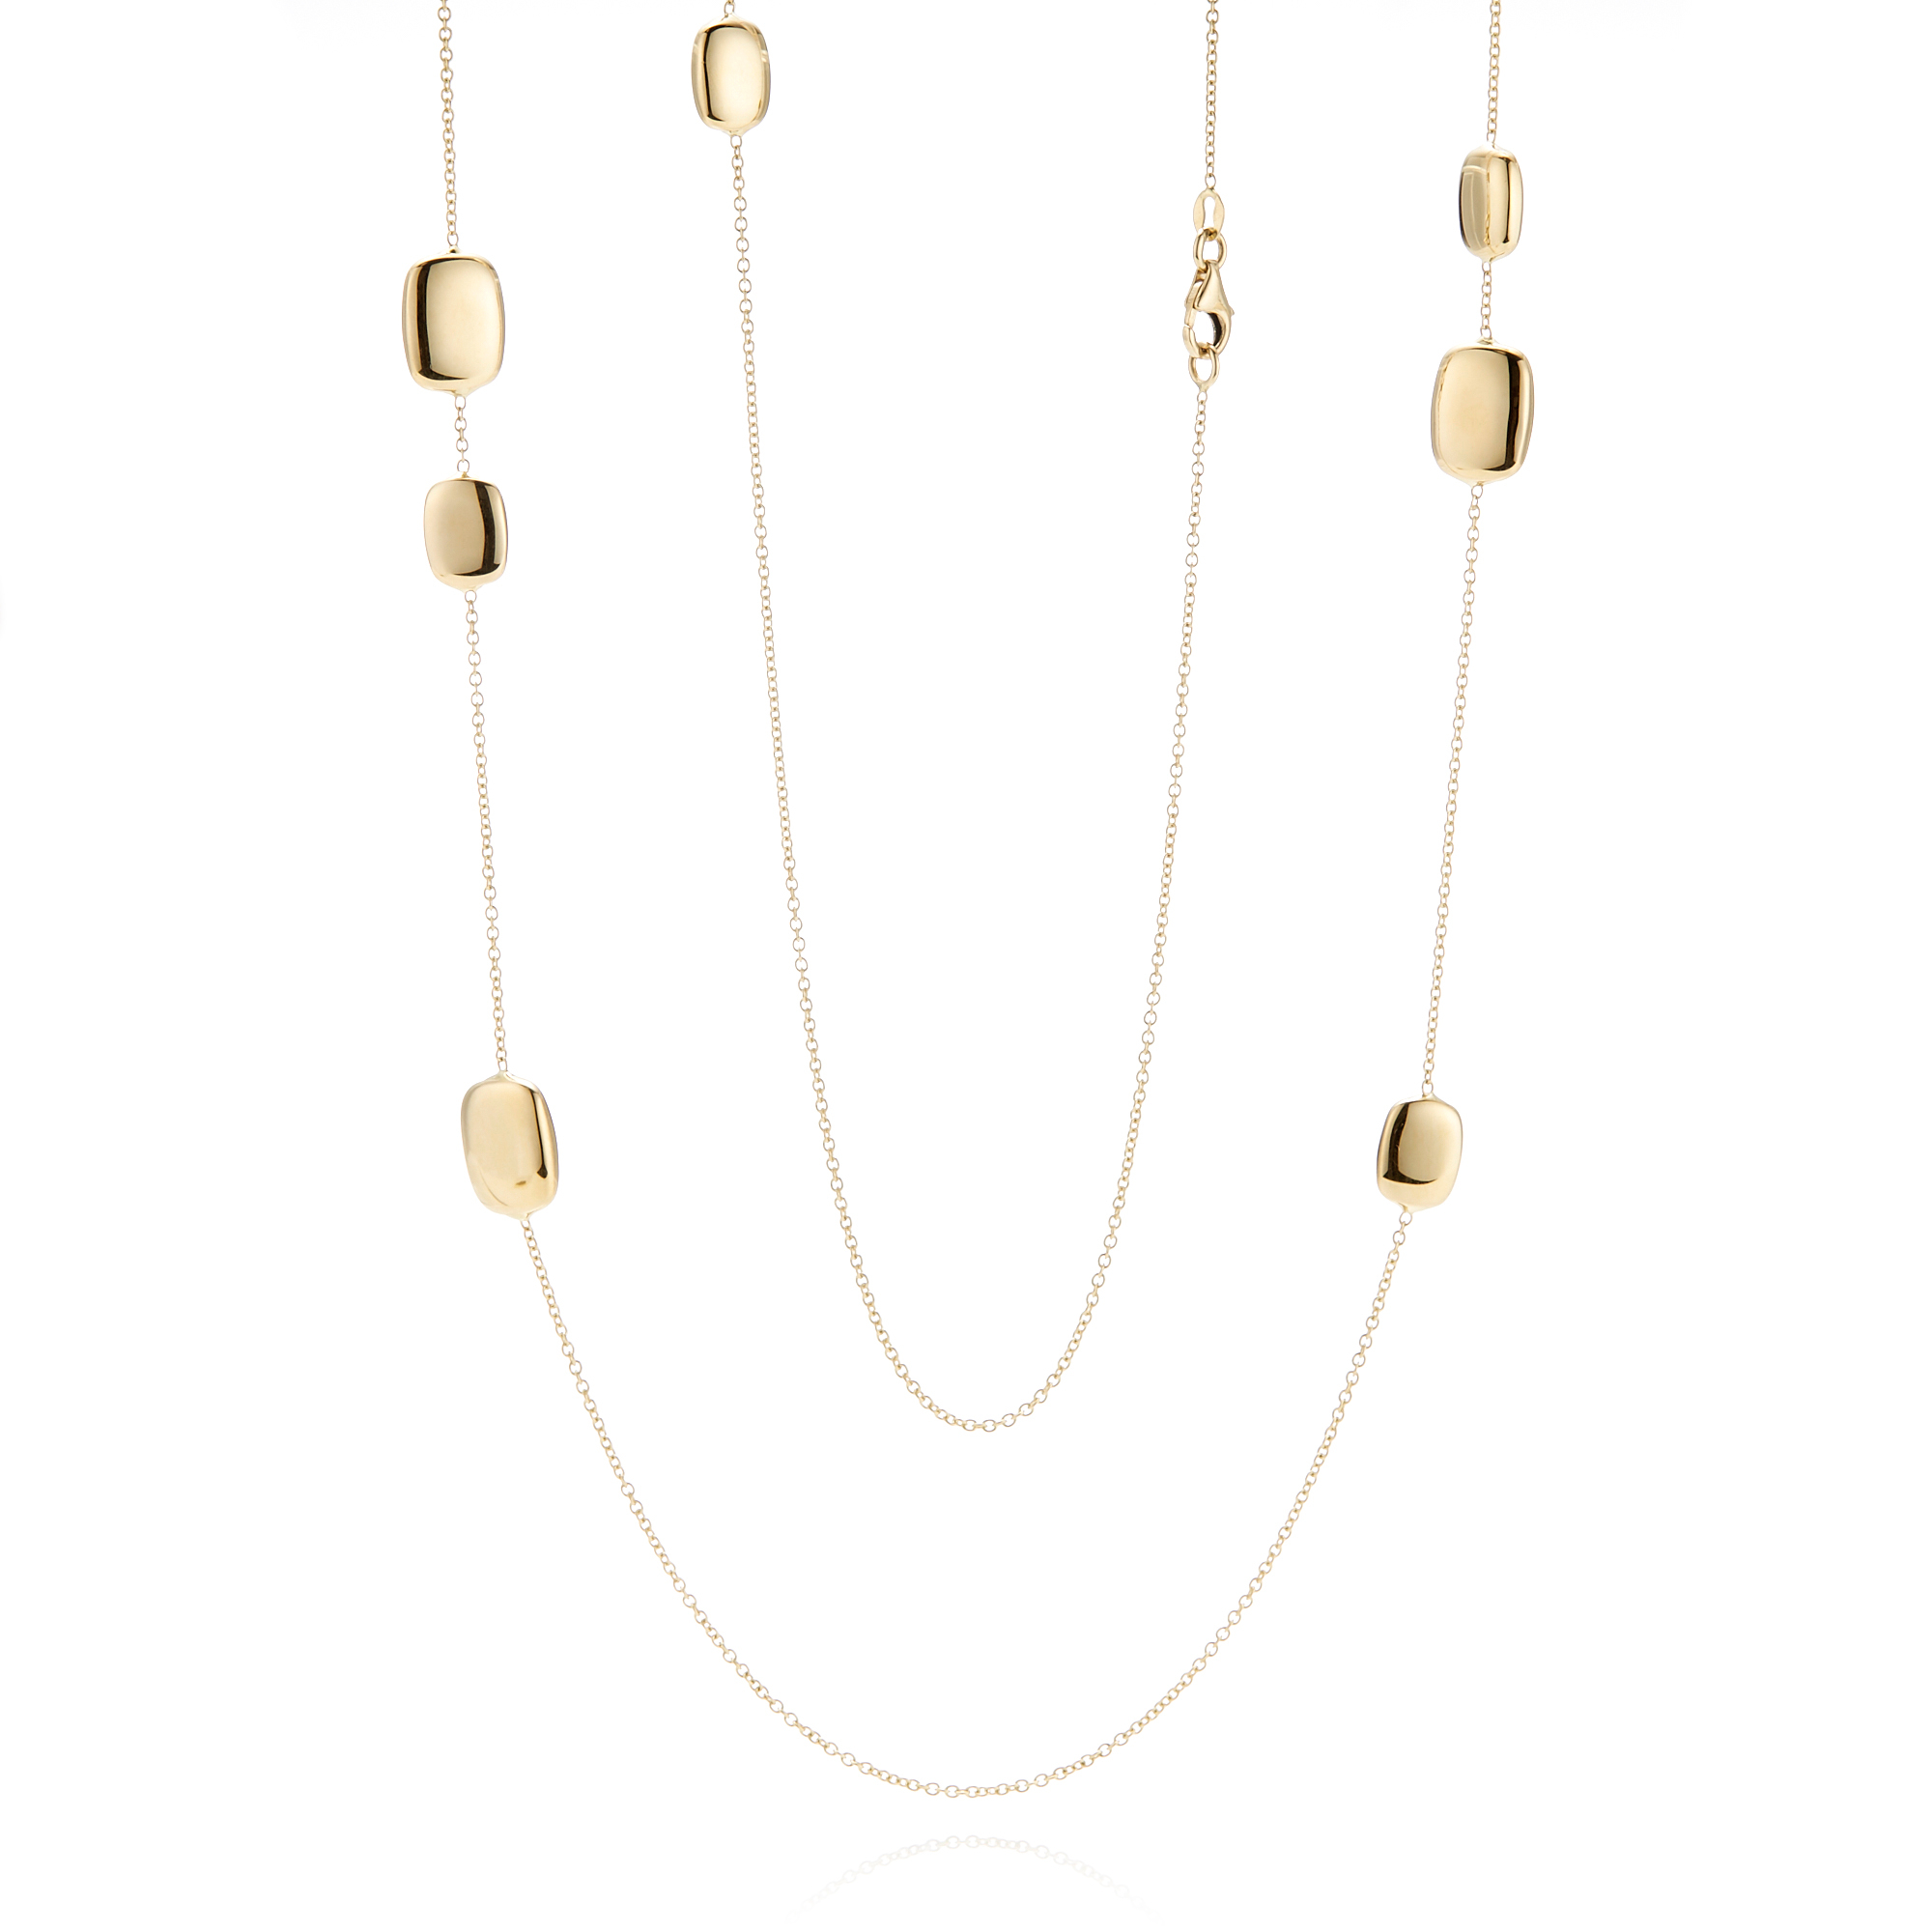 Polished Rounded Rectangle Gold Station Necklace